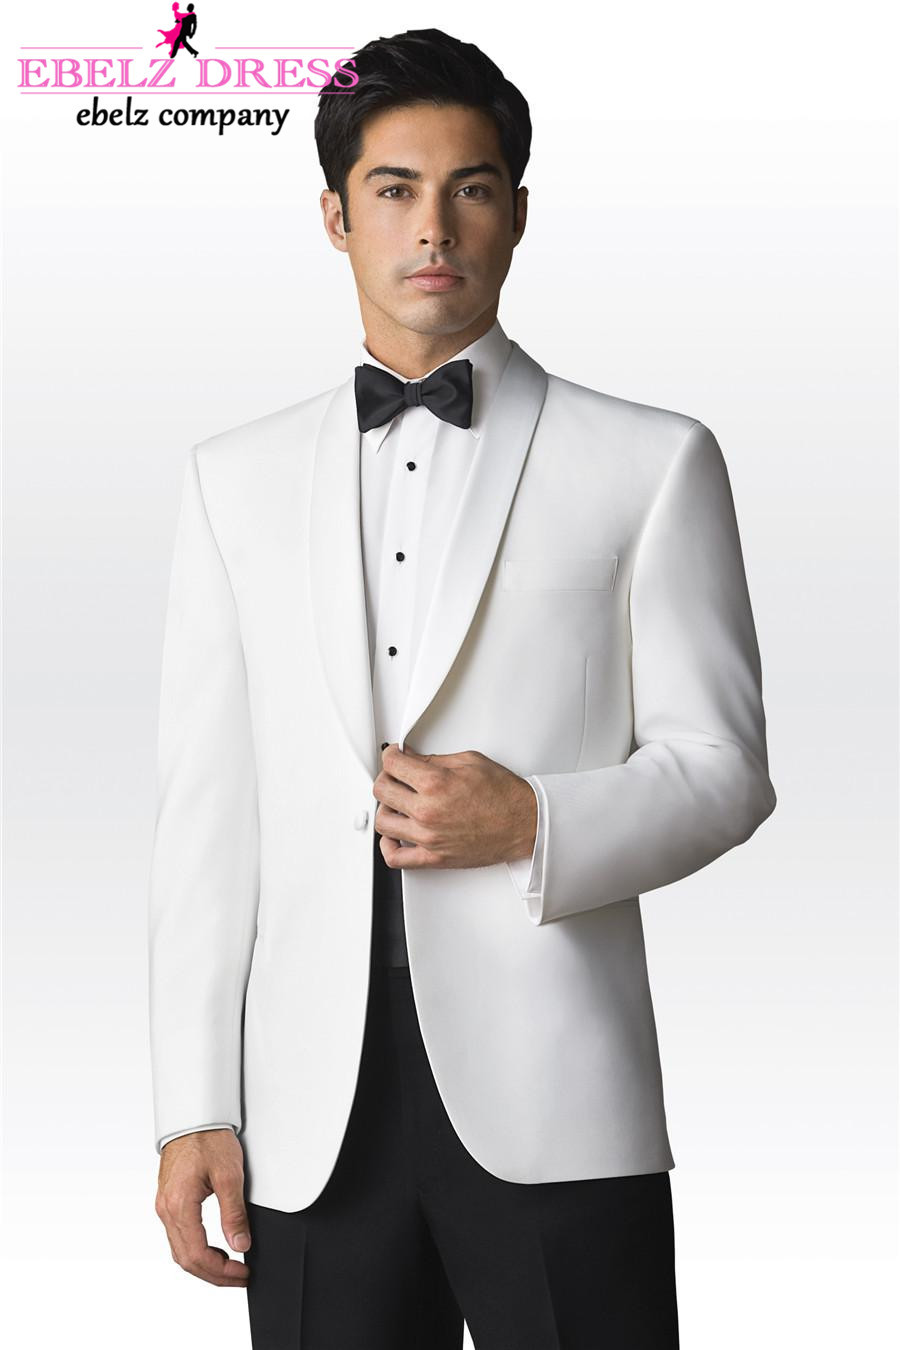 White tuxedos can be worn to a variety of formal events including weddings, proms, cruises, dinners, galas and list goes on and on! Matching white pants can be worn with some styles, but many gentlemen opt to go with the contrasting black pants to accompany the white jacket. Subtle variations include full black satin lapels, black trim lapels and also subtle black accents on the pockets.